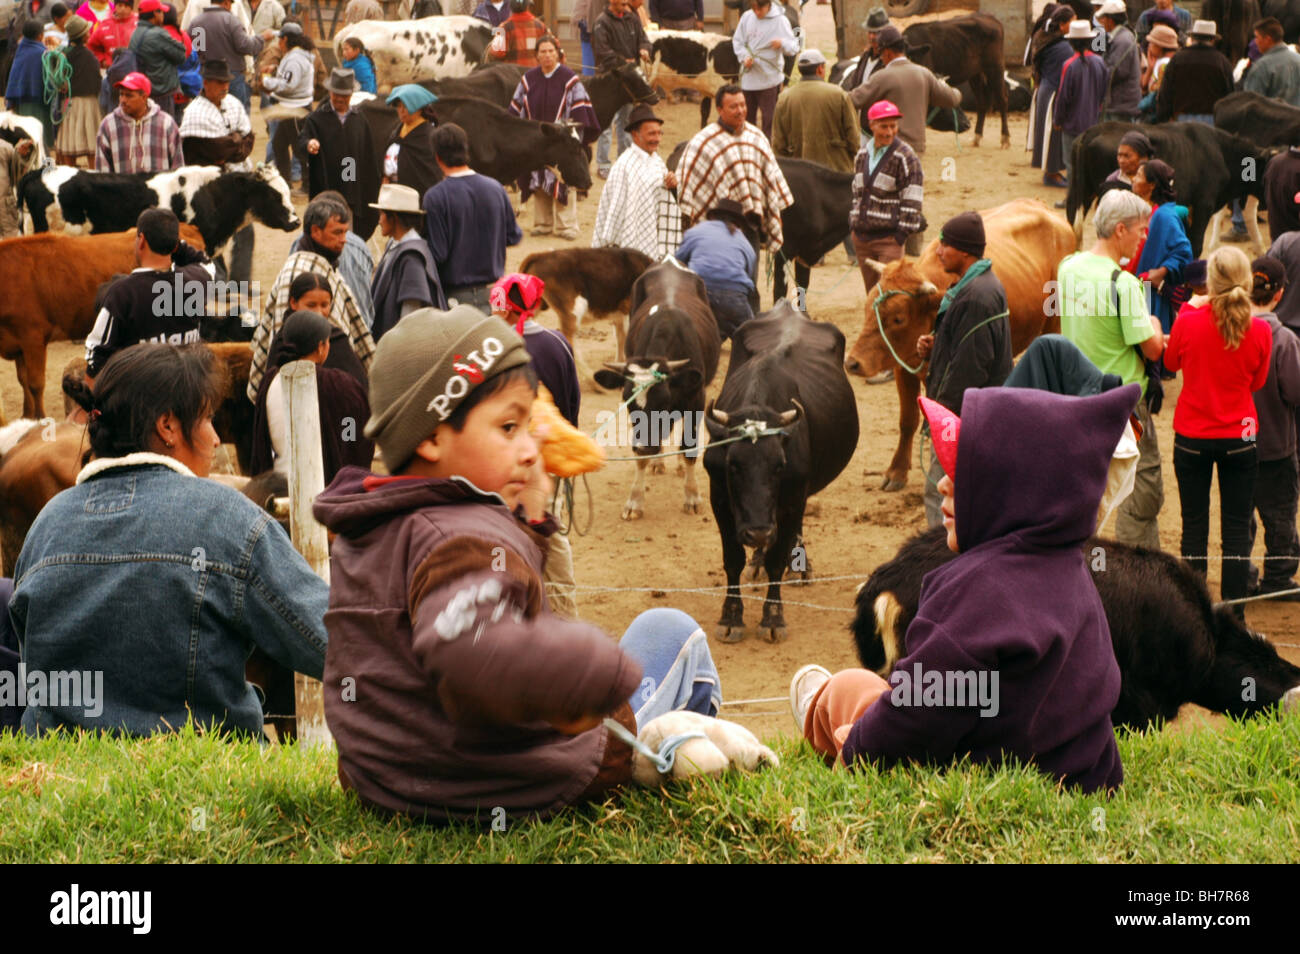 Ecuador, Otavalo, rear view of two boys sitting on a grassy area, overlooking at at the cows section of a cattle - Stock Image